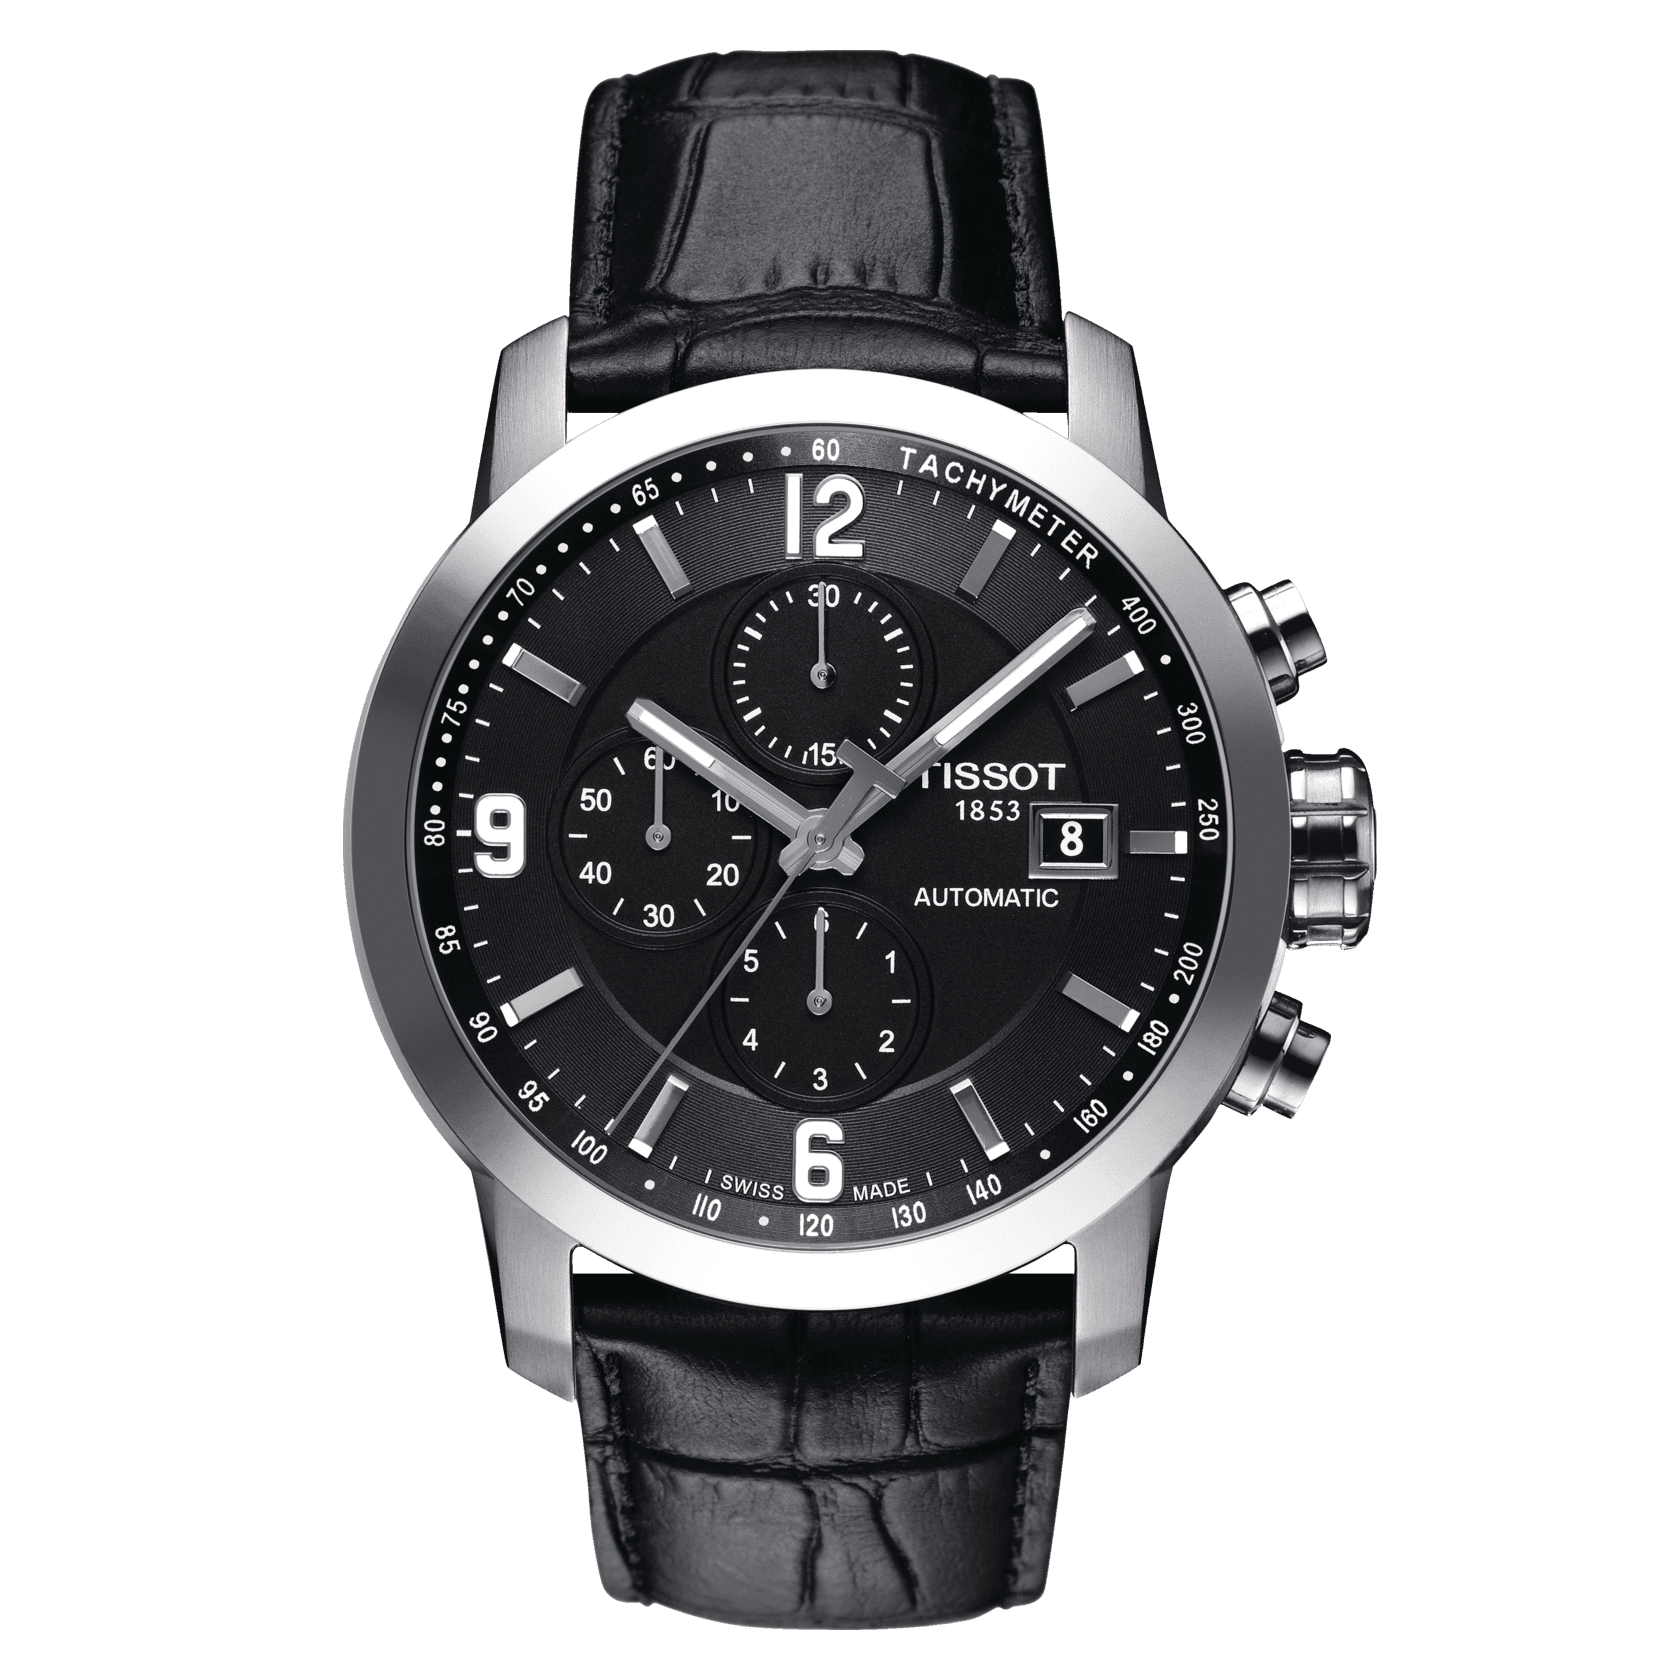 online men shshd watches original in shhdang best at watch for pr imaemhdfjghevzty india brand prices buy